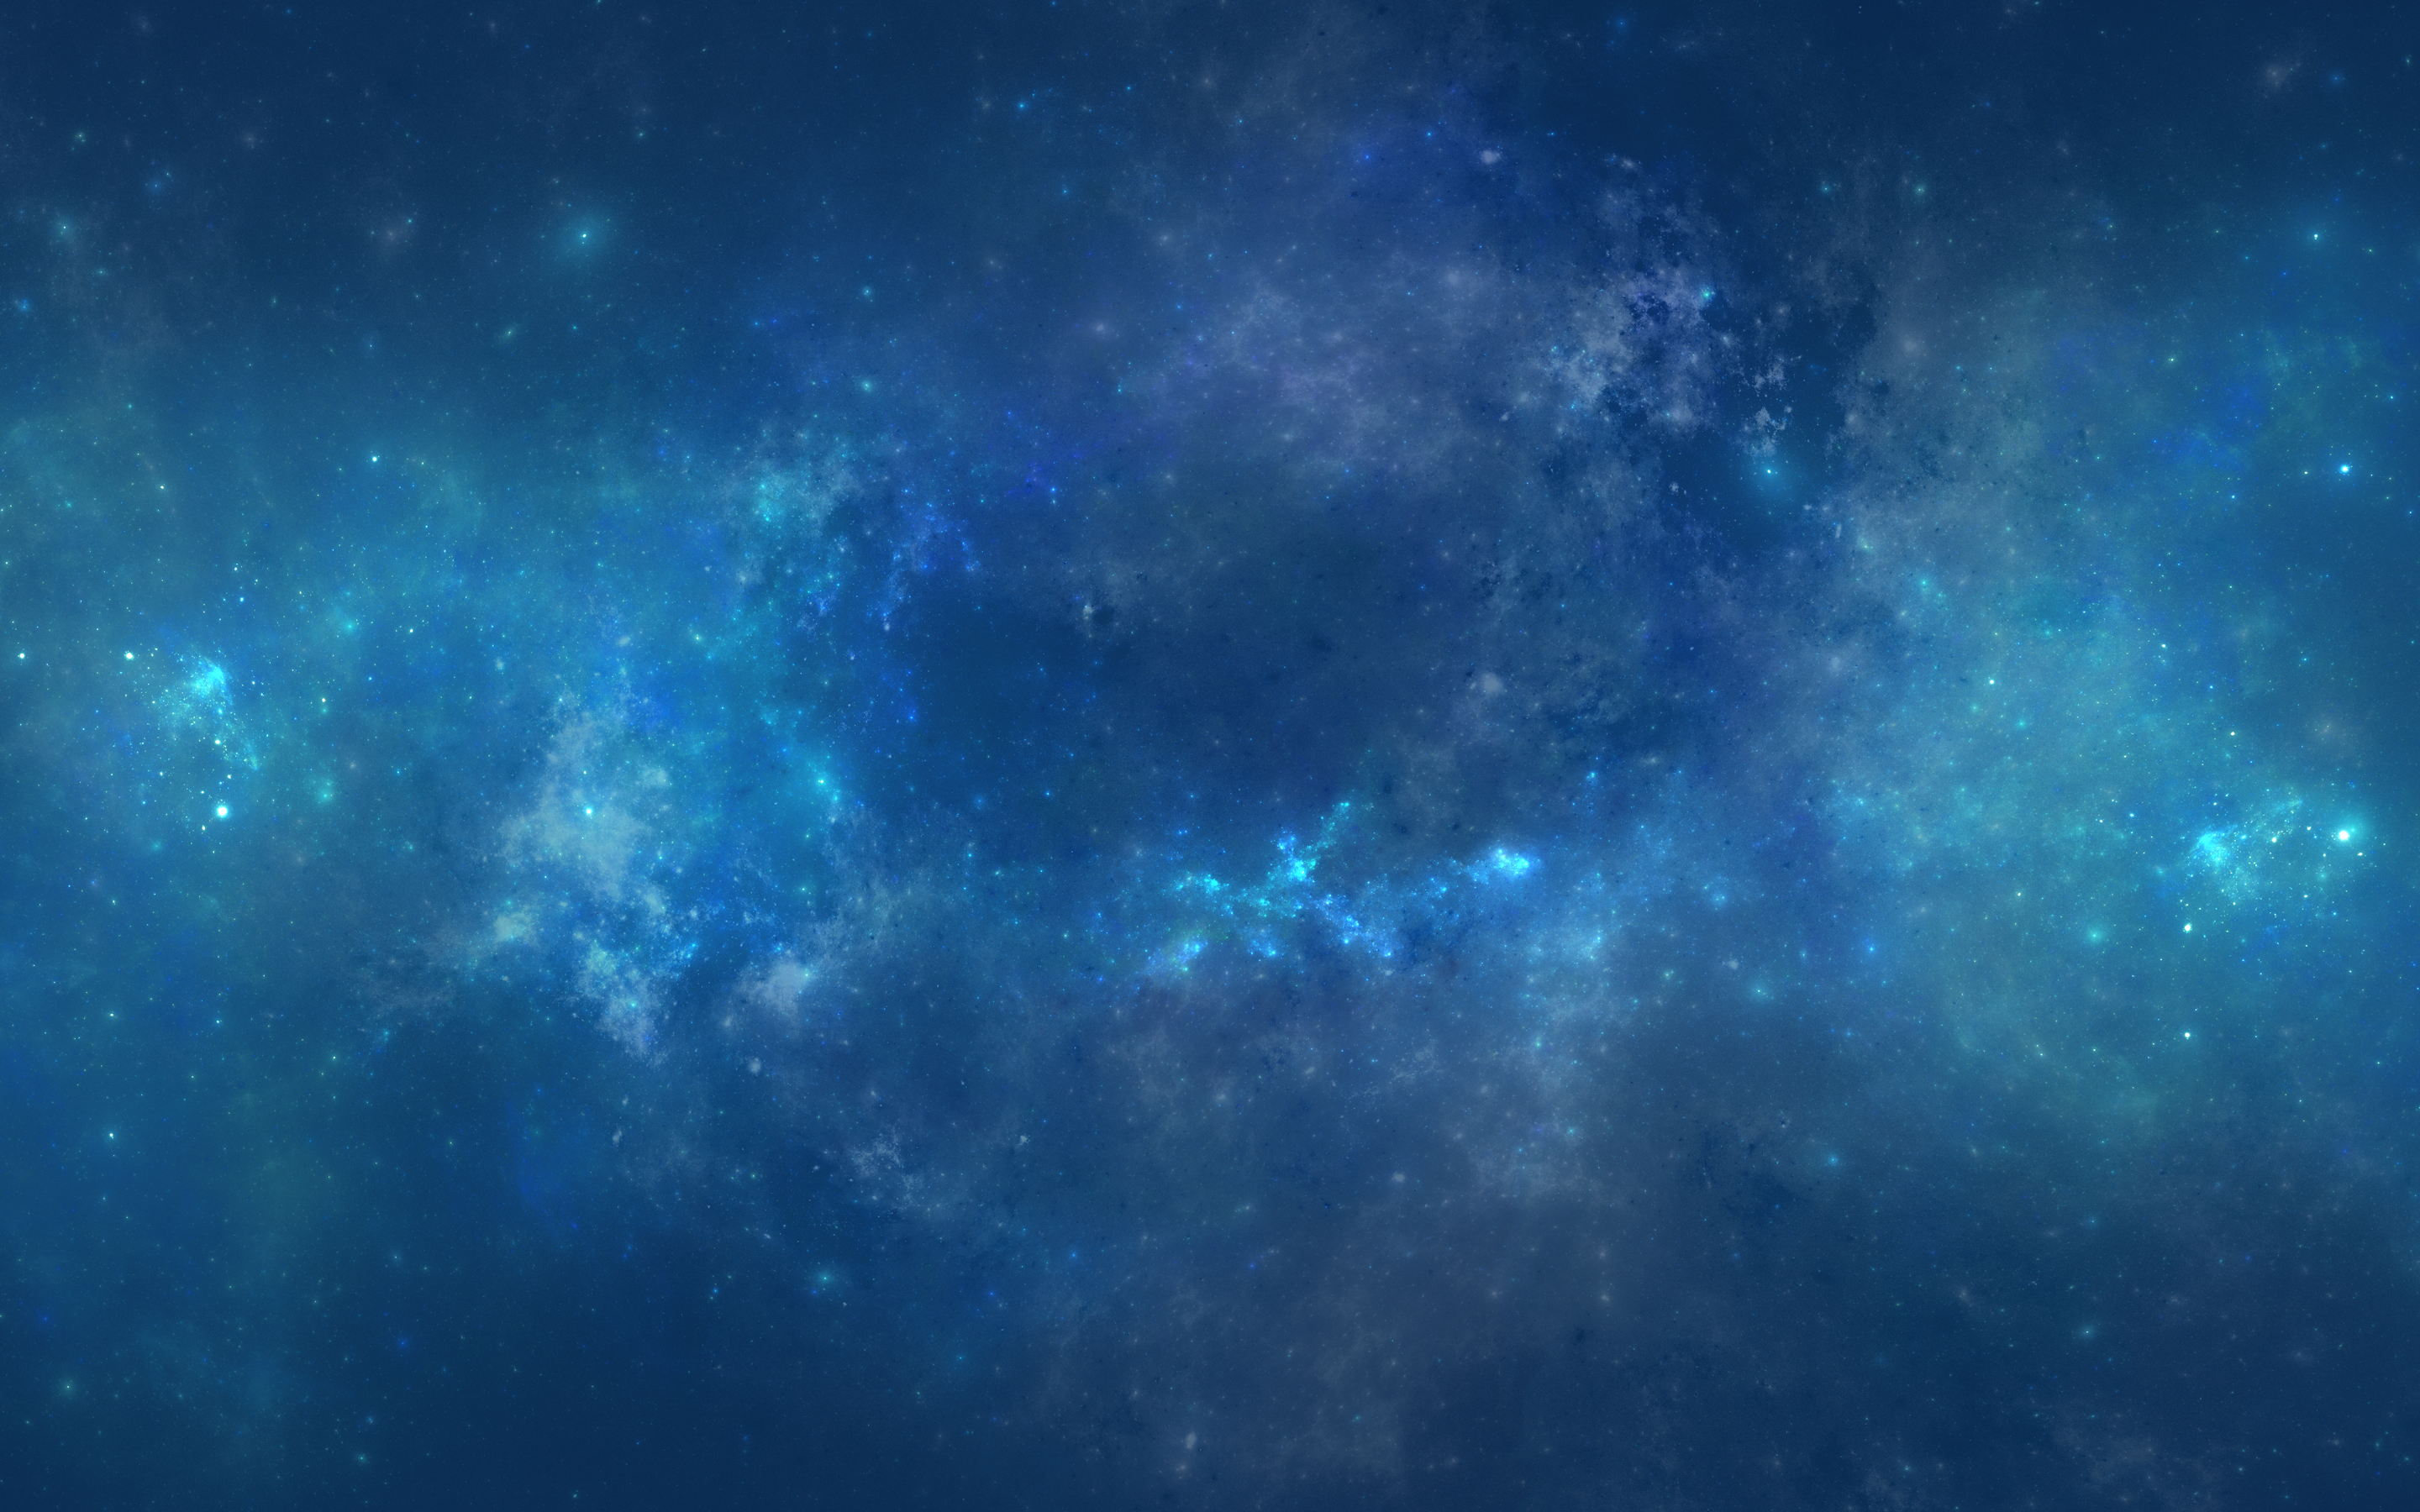 Wallpapers Blue Drawings and Paintings Space Nebulae Stars 4K 2880x1800